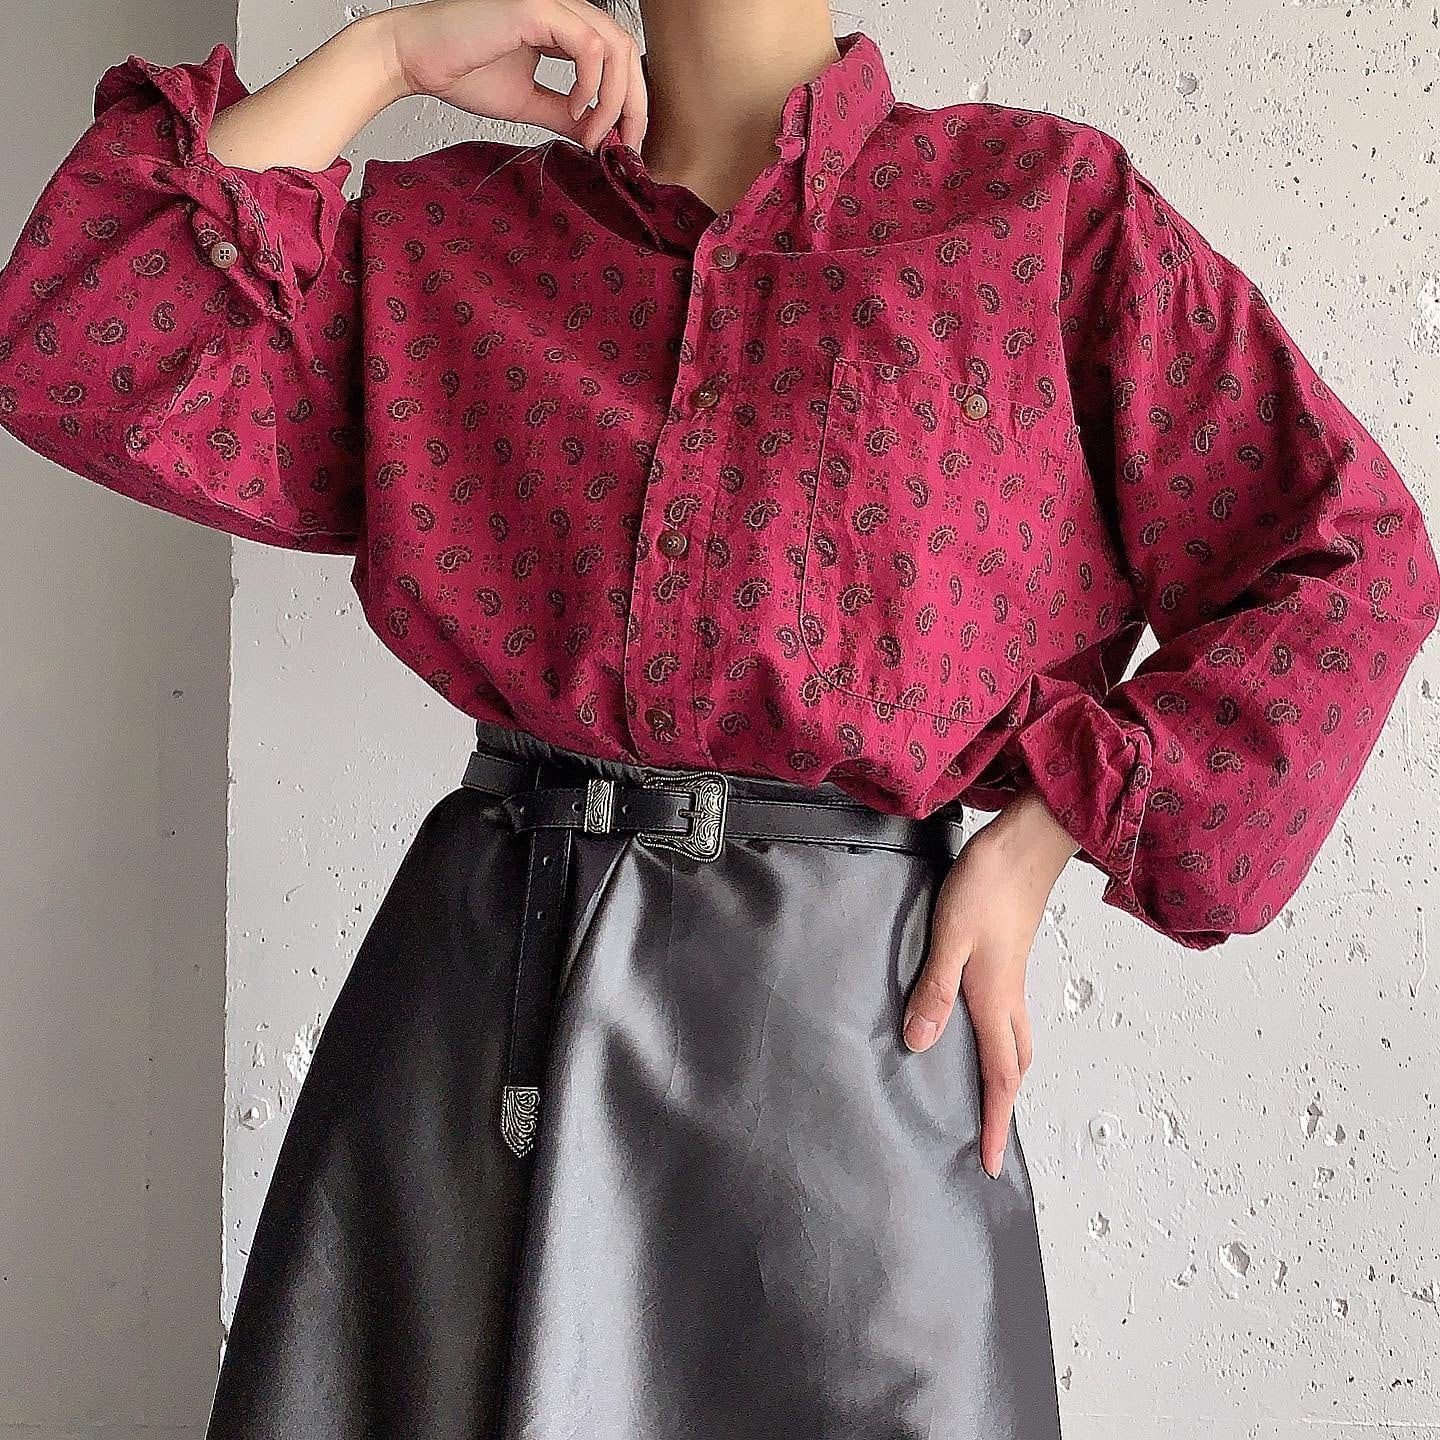 made in USA 80's vintage cotton shirt